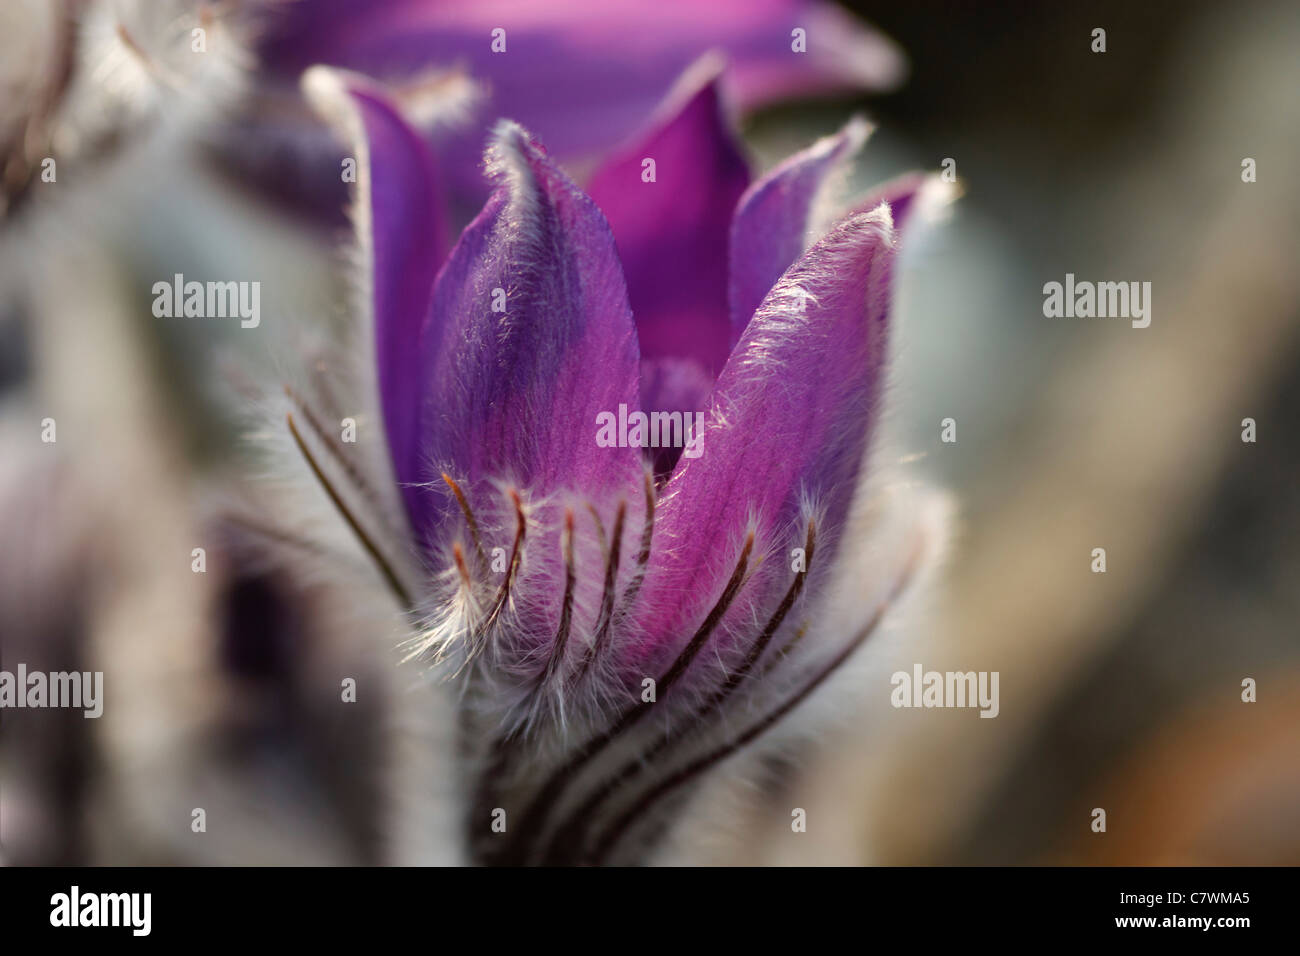 Close-up image of a Pulsatilla Halleri in spring time. Stock Photo